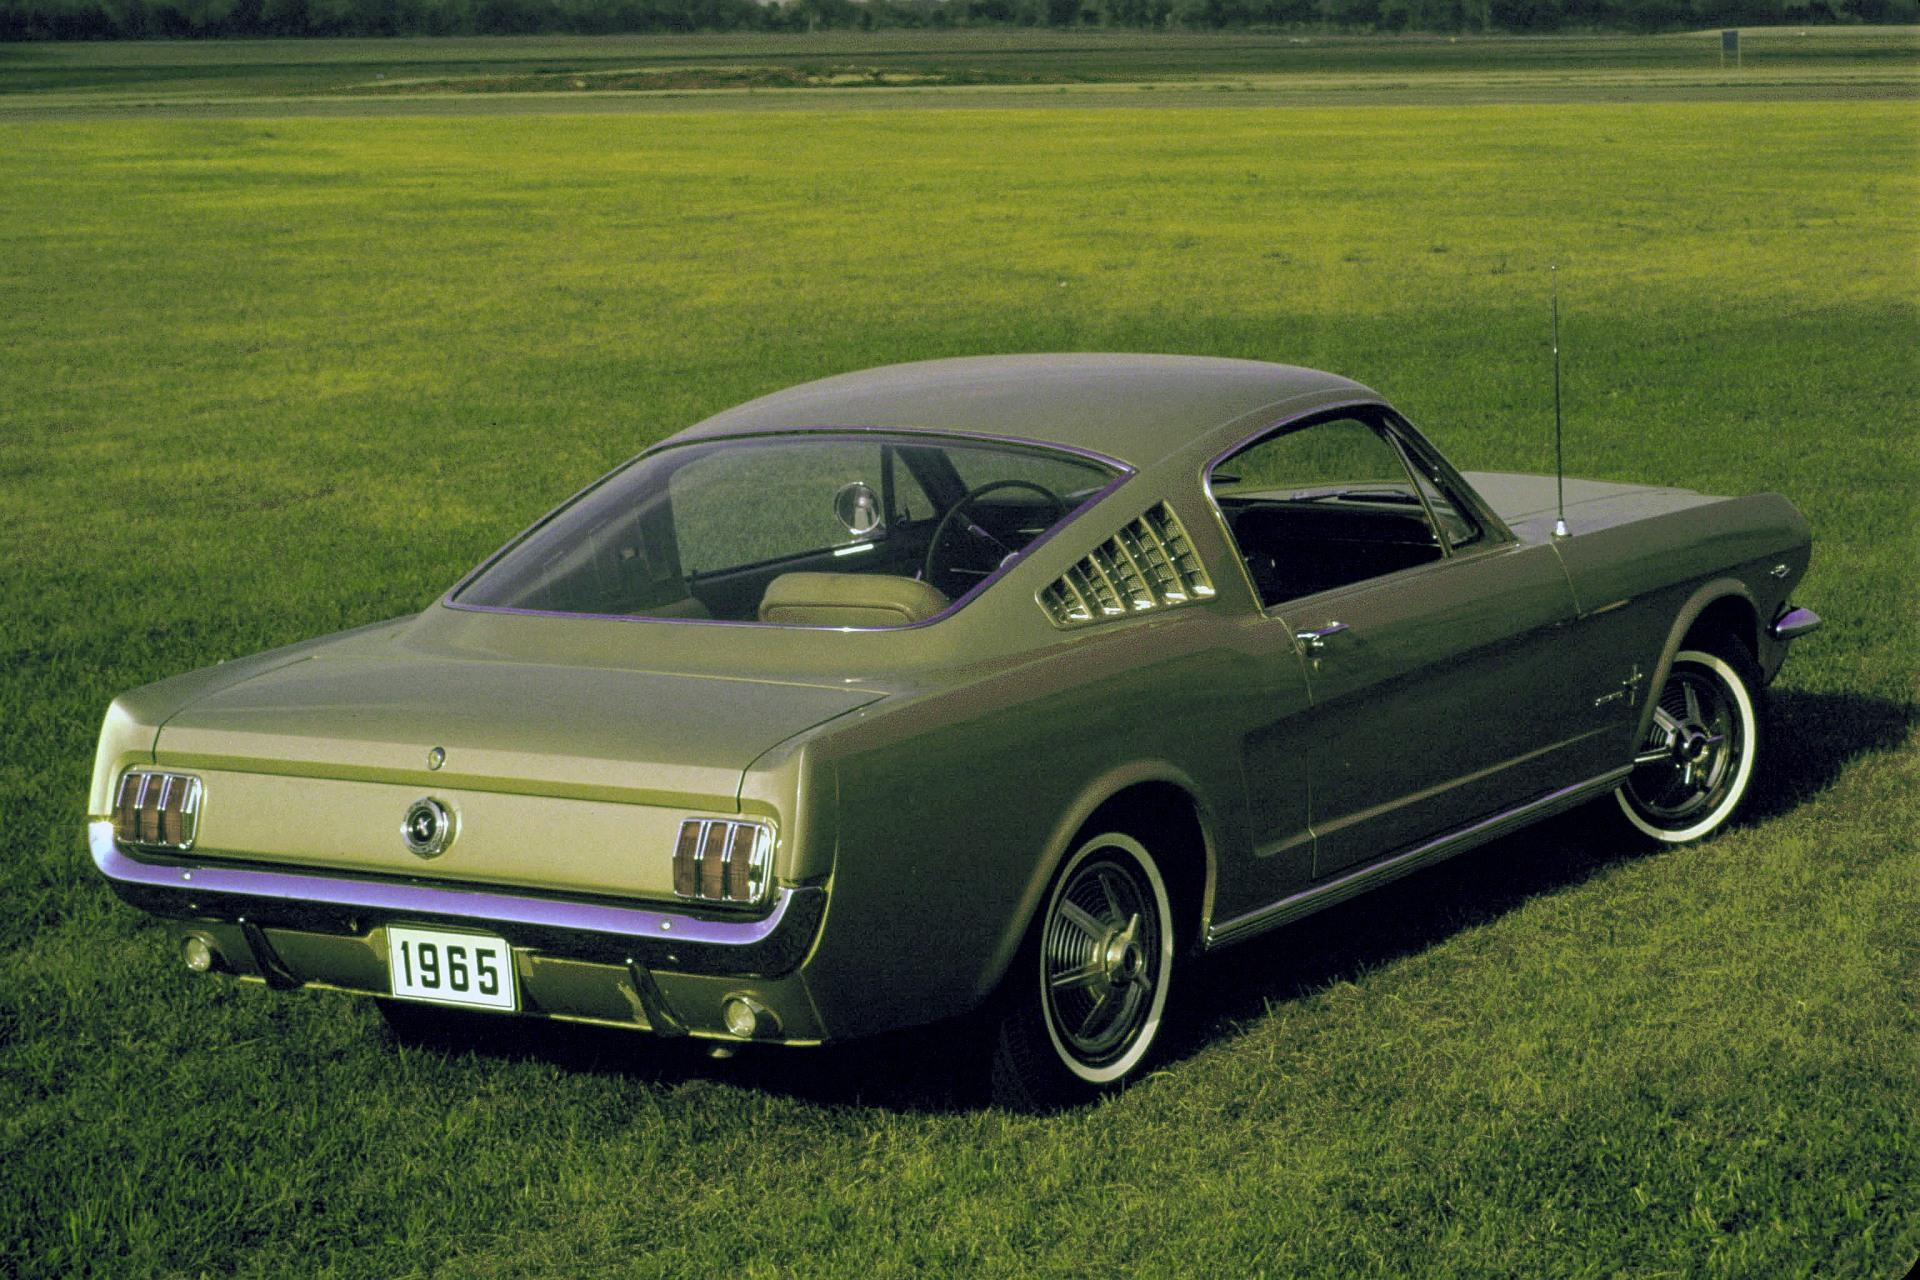 1965 ford mustang images photo 1965 ford mustang image. Black Bedroom Furniture Sets. Home Design Ideas